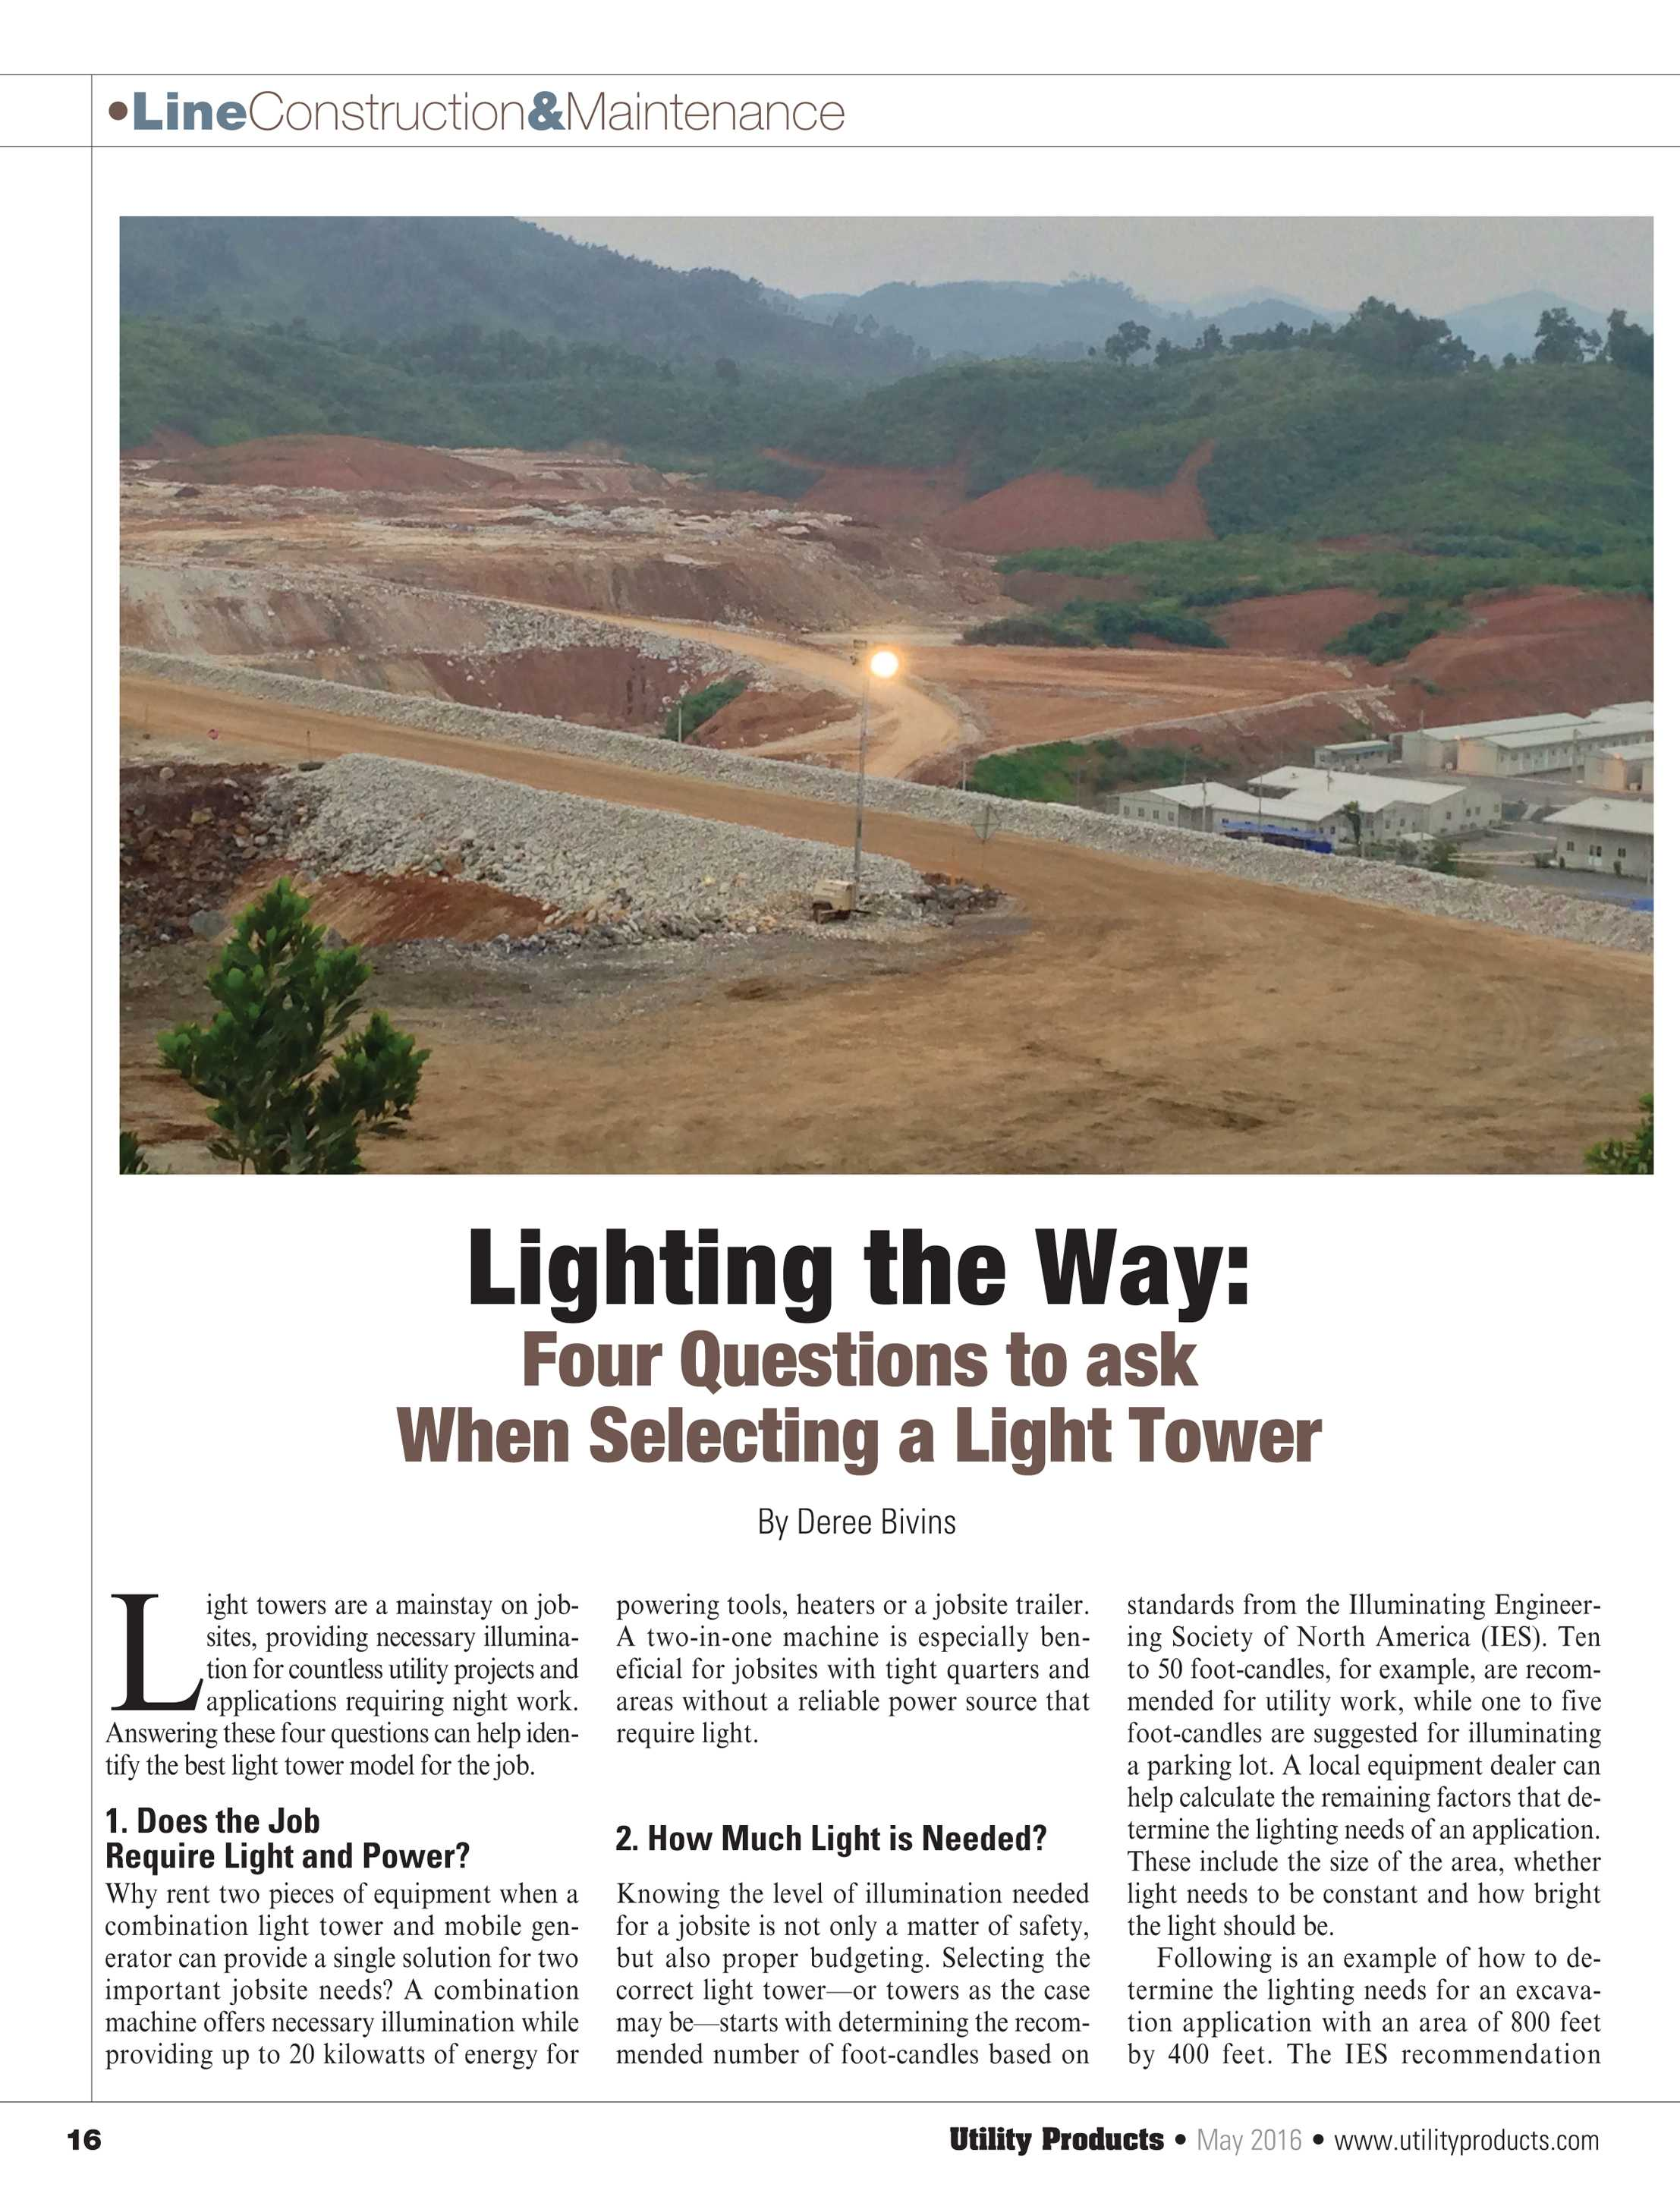 Utility Products May 2016 Page 16